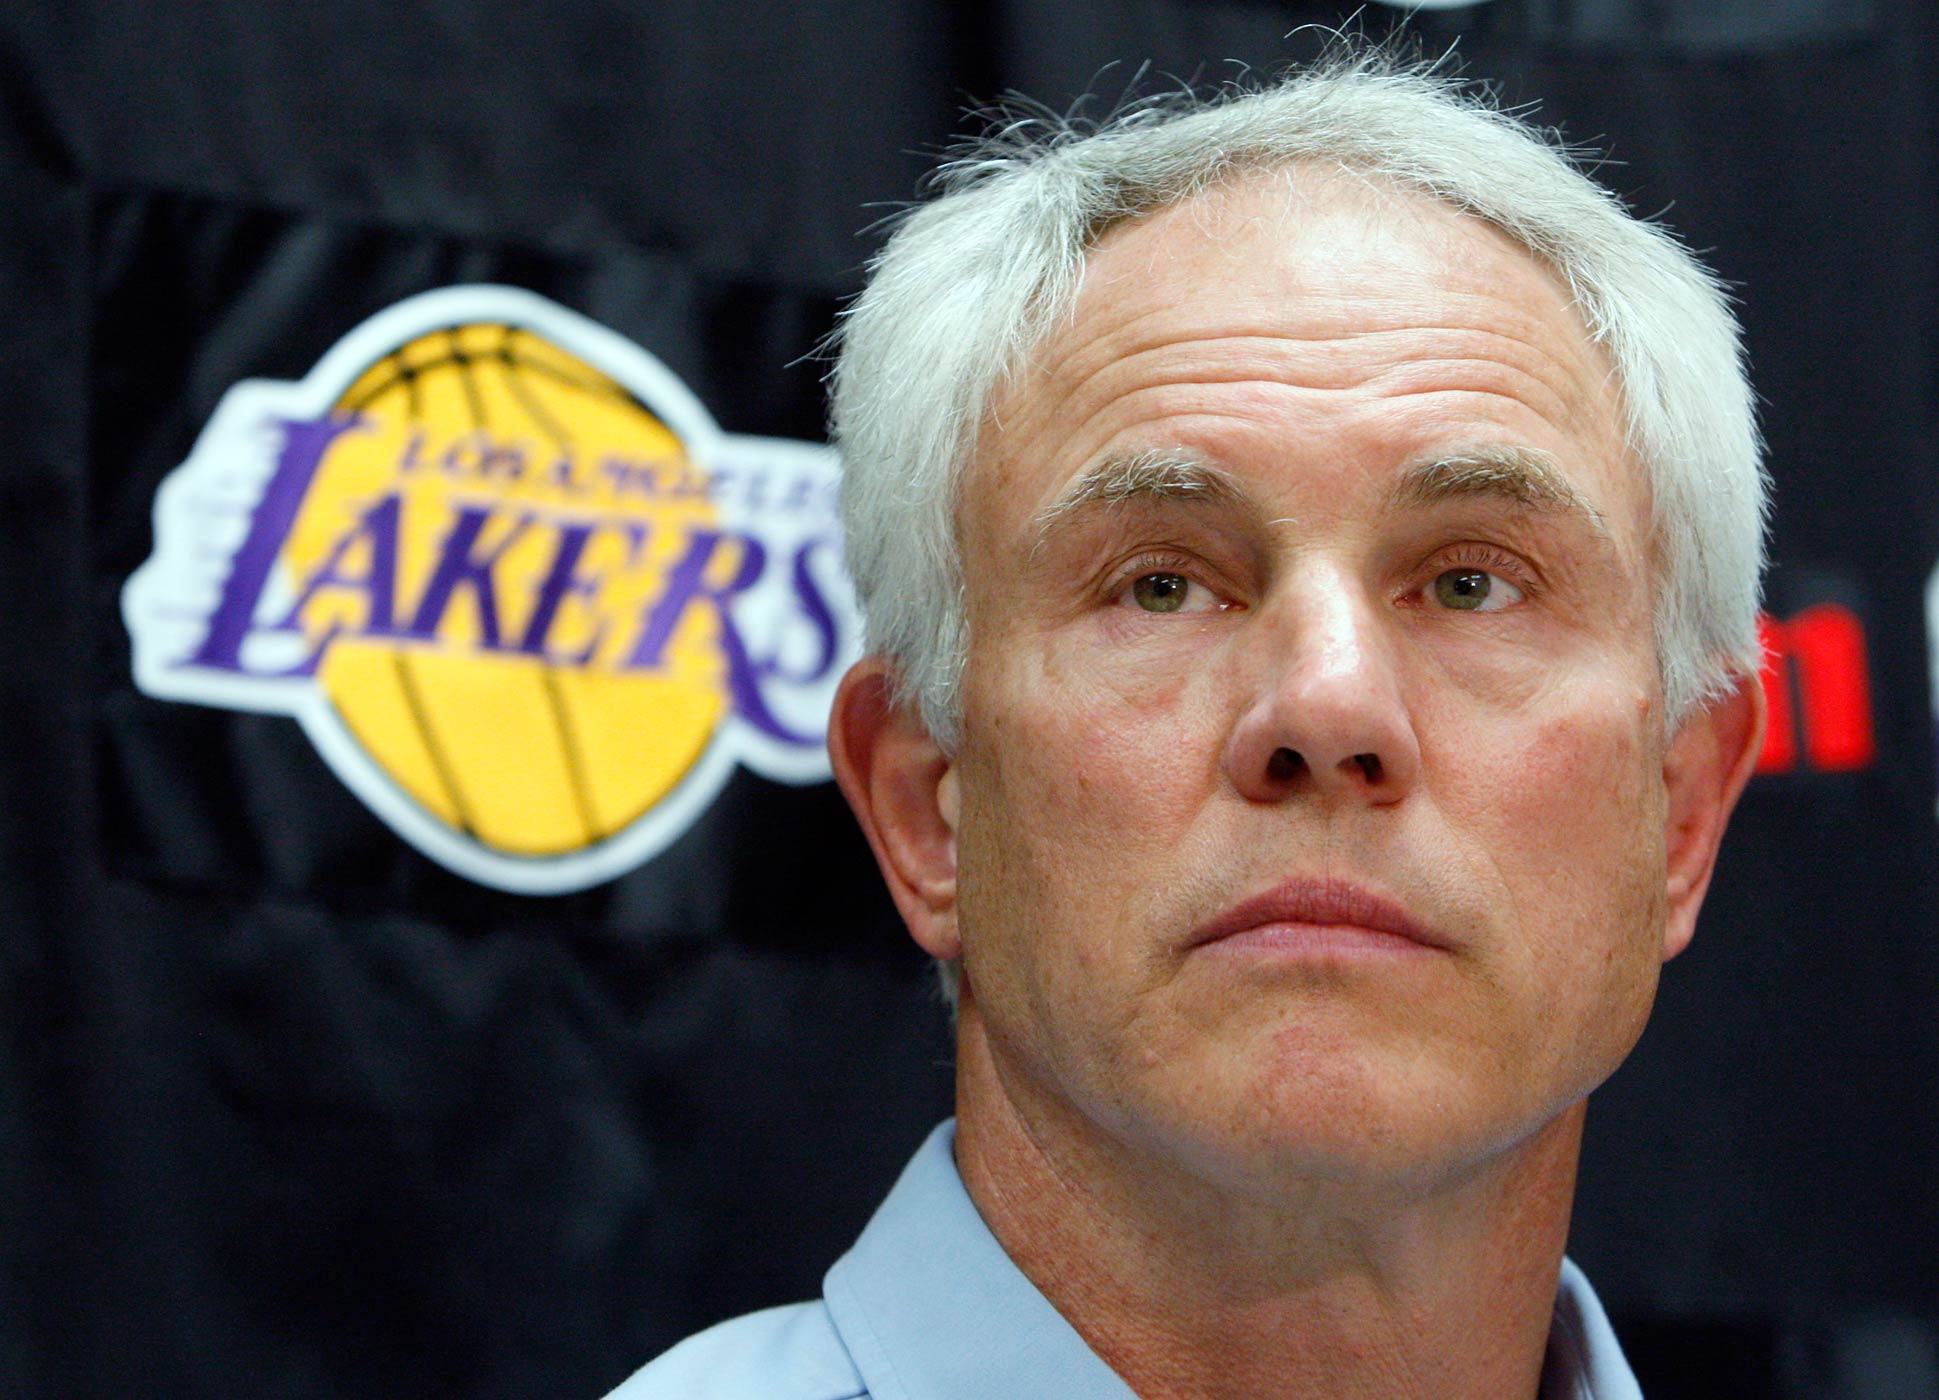 Los Angeles Lakers general manager Mitch Kupchak talks to reporters at the team's practice facility in El Segundo, Calif., June 23, 2010.